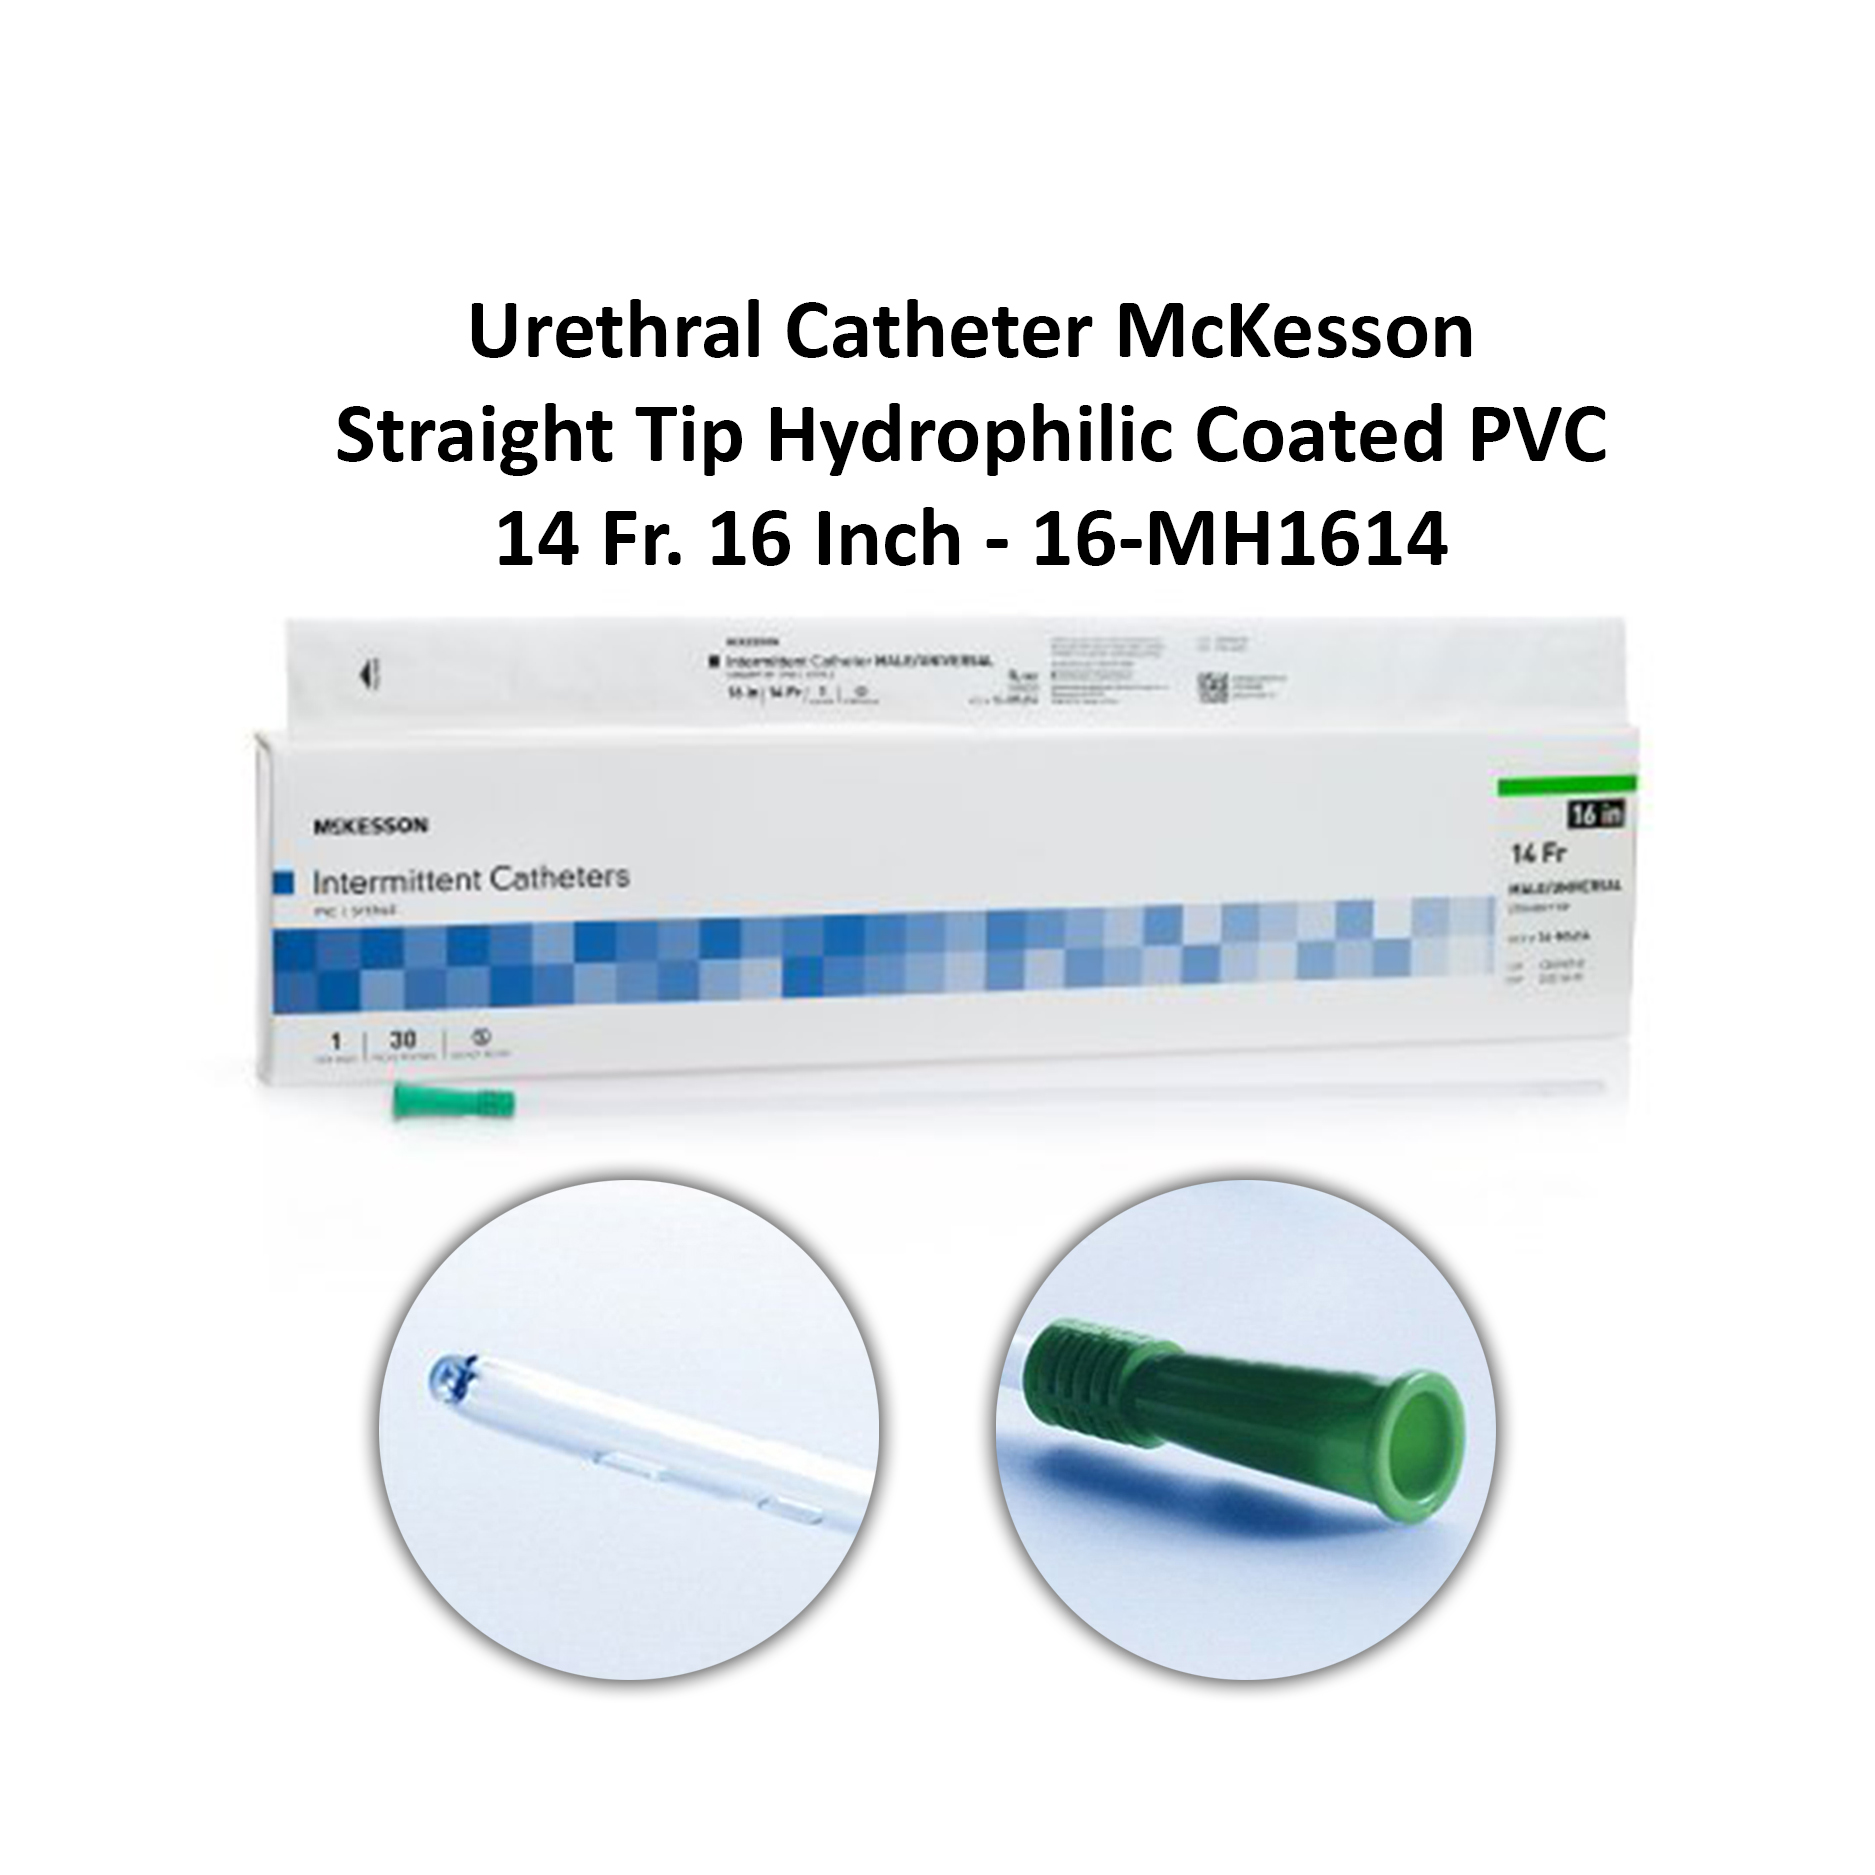 Urethral Catheter McKesson Straight Tip Hydrophilic Coated PVC 14 Fr. 16 Inch - 16-MH1614